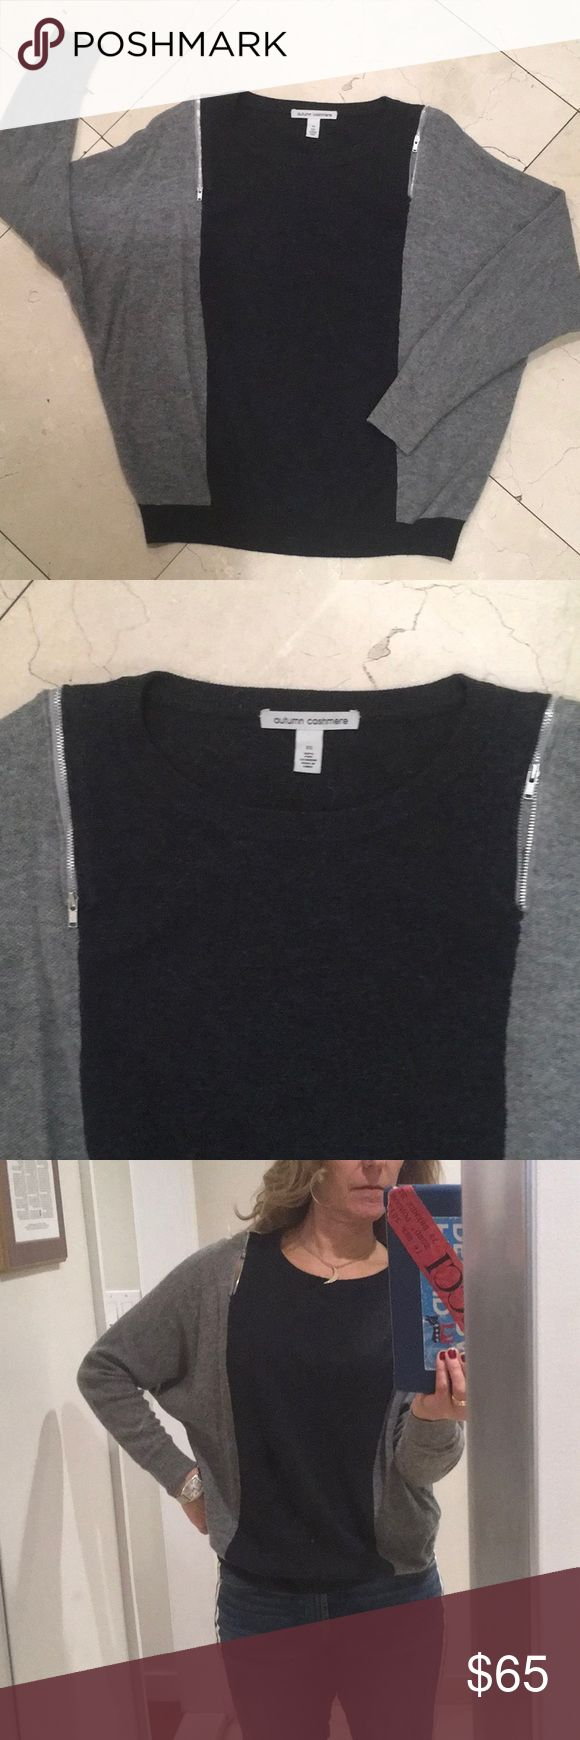 Autumn Cashmere two tone grey sweater with zippers 100% pure cashmere by  Autumn Cashmere with